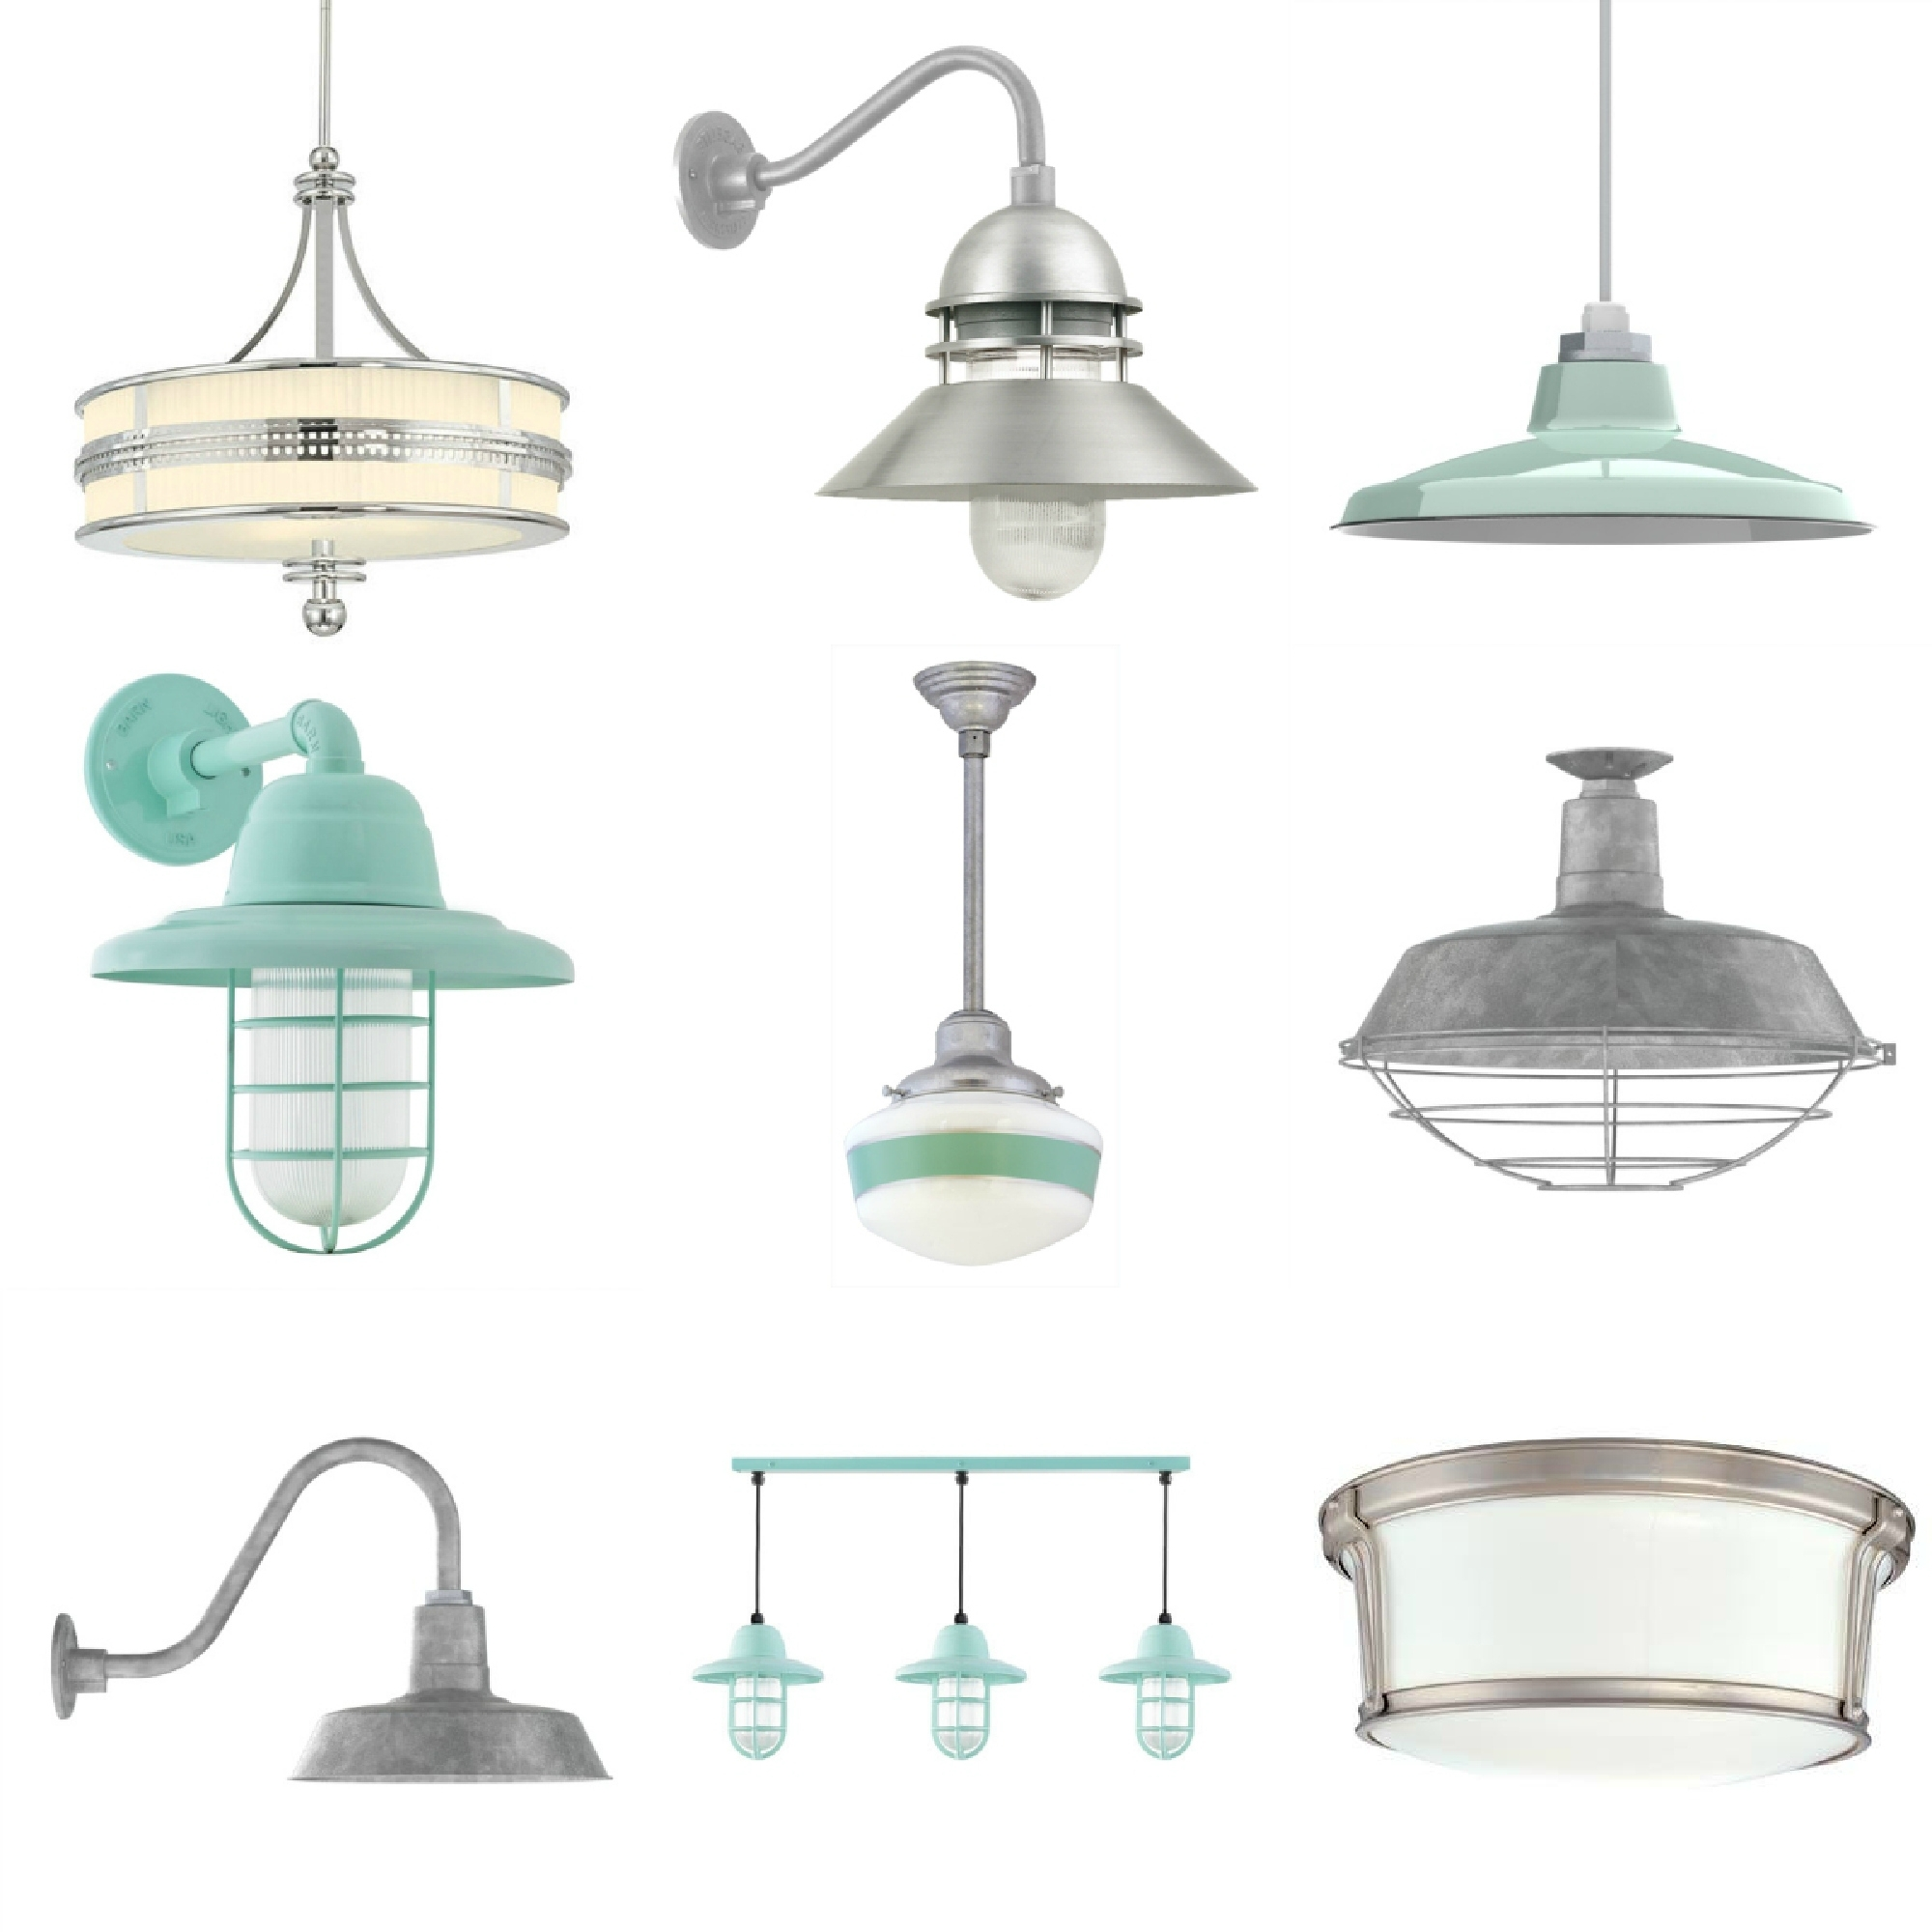 Inspiration about Galvanized Pendant Barn Light. Top Top Two Photos Courtesy Dead End Intended For Galvanized Outdoor Ceiling Lights (#11 of 15)